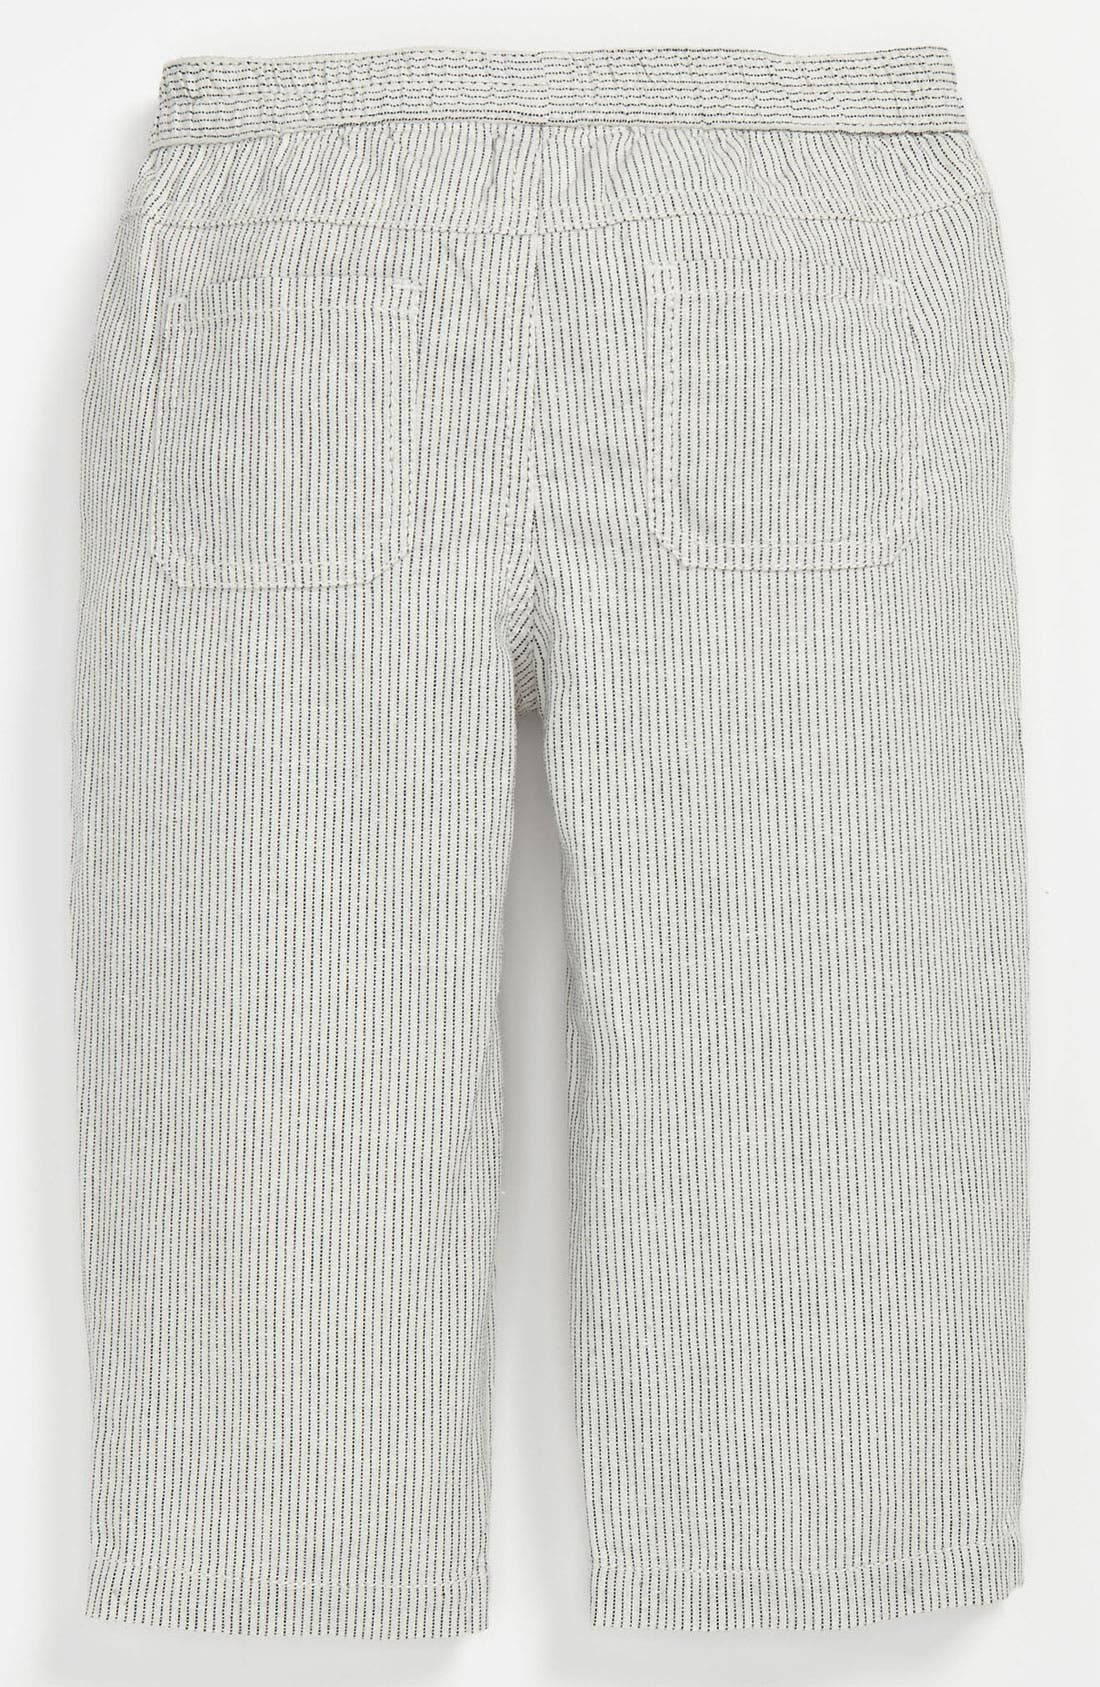 Alternate Image 2  - Nordstrom Baby 'Spring' Woven Pants (Baby)